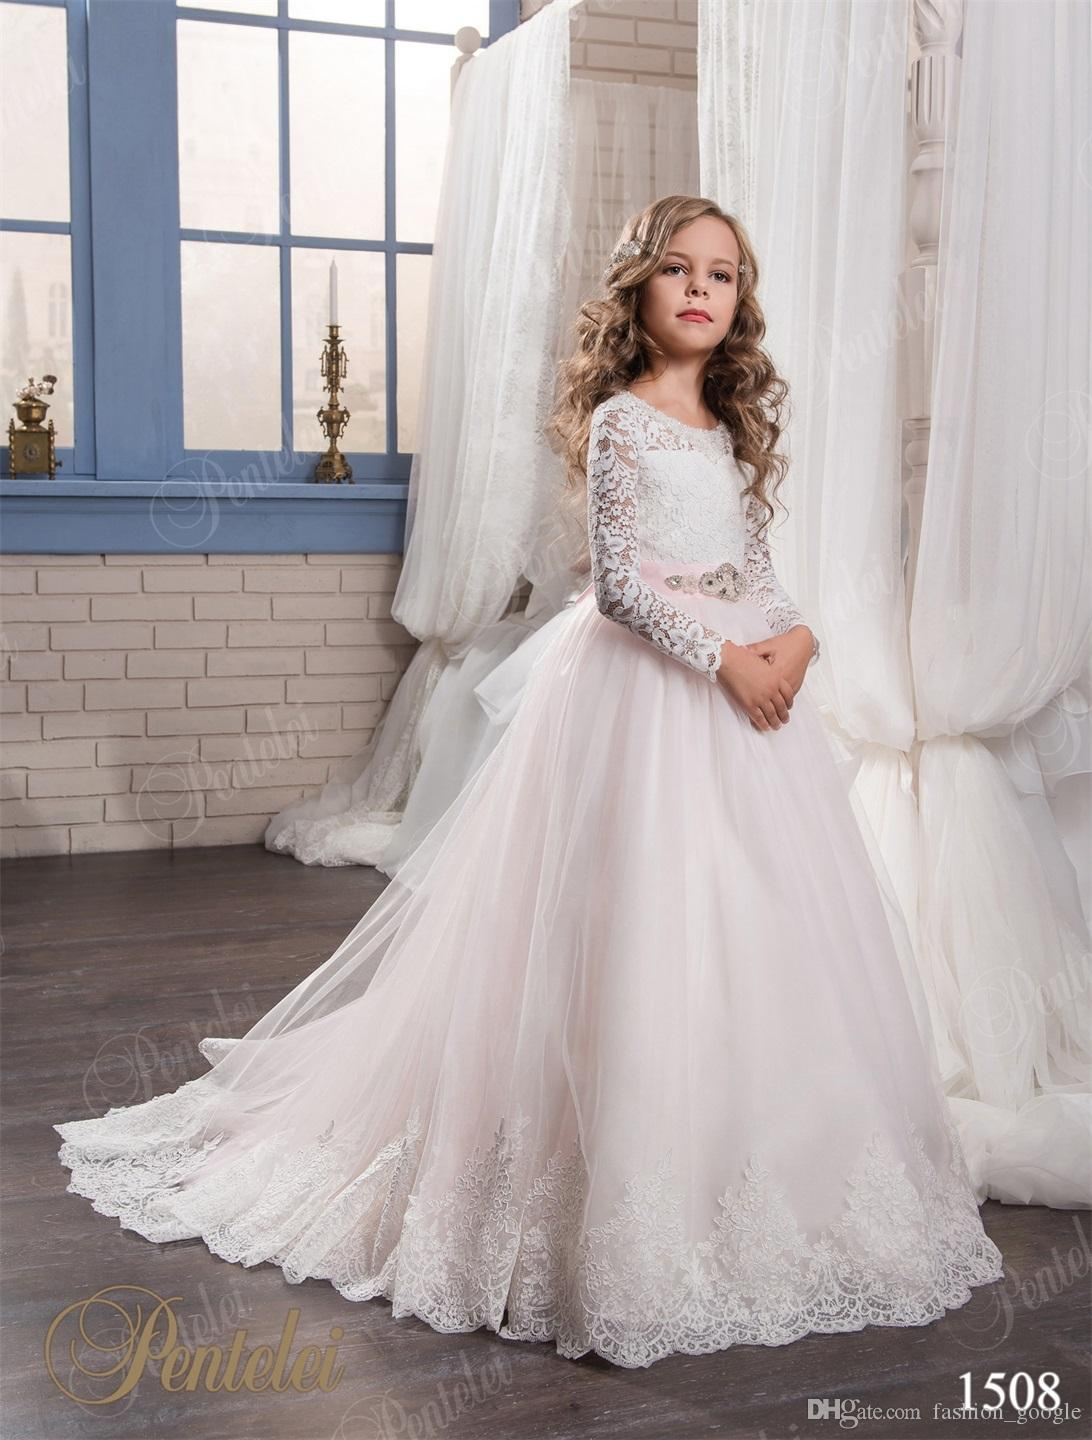 Kids wedding dresses 2017 long sleeves sweep train for Wedding dresses for child